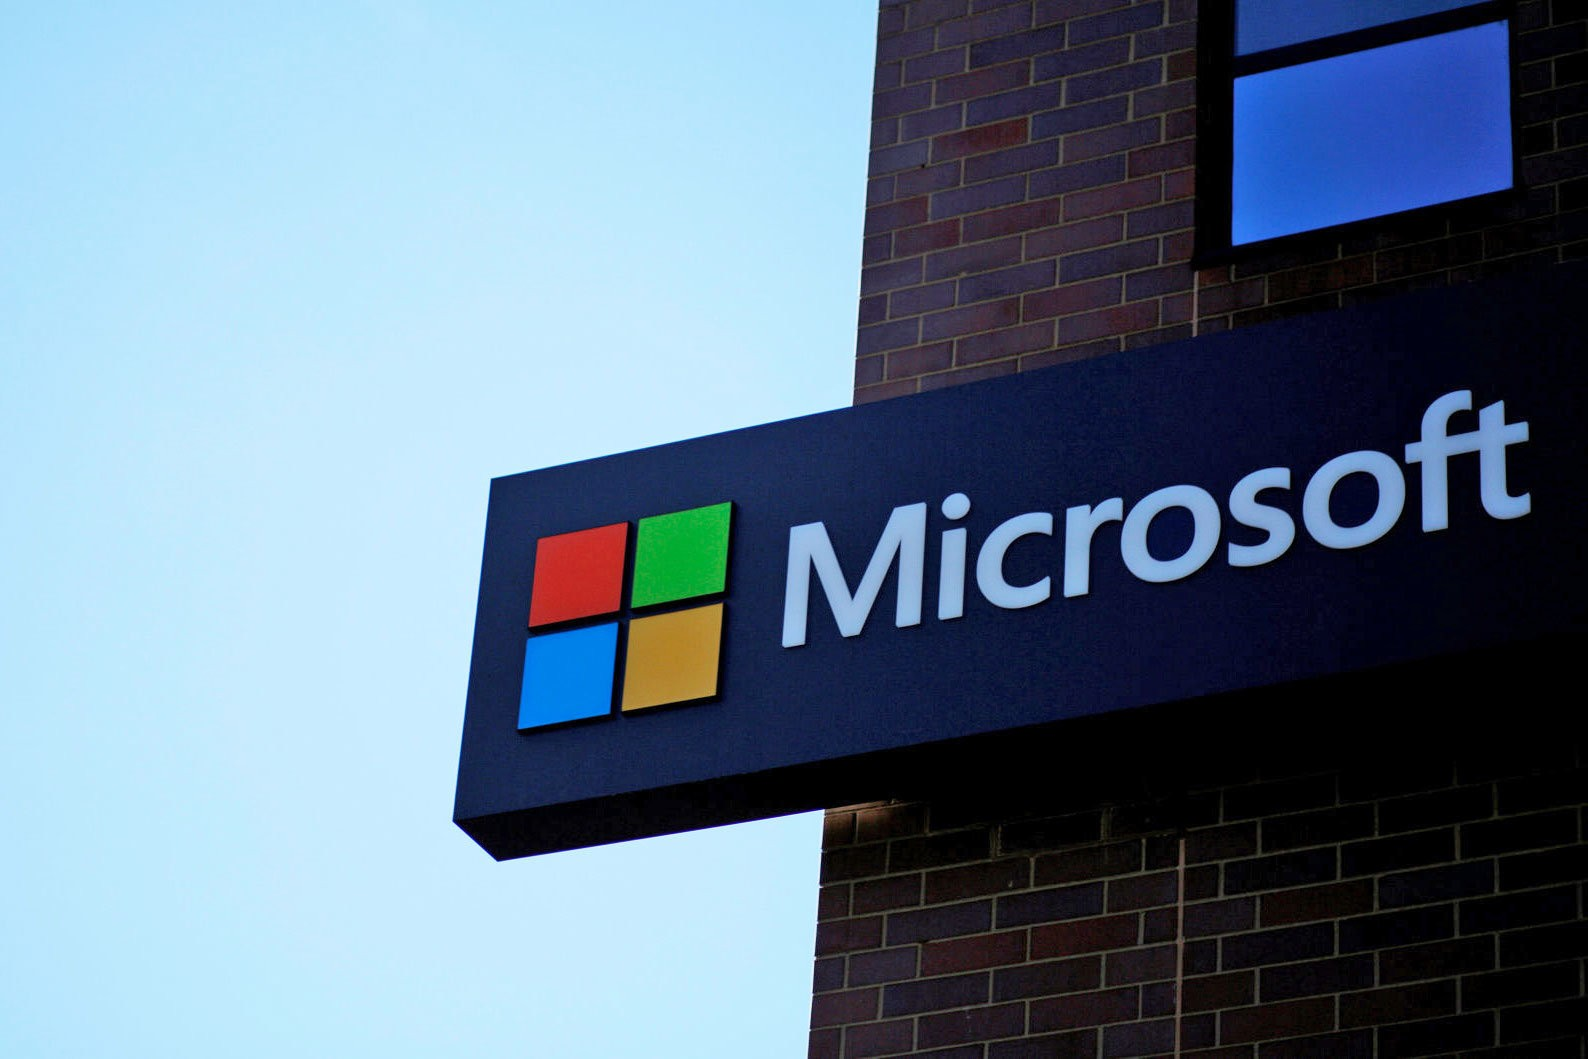 Microsoft Reveals Email Breach, Says Hackers Accessed User Data